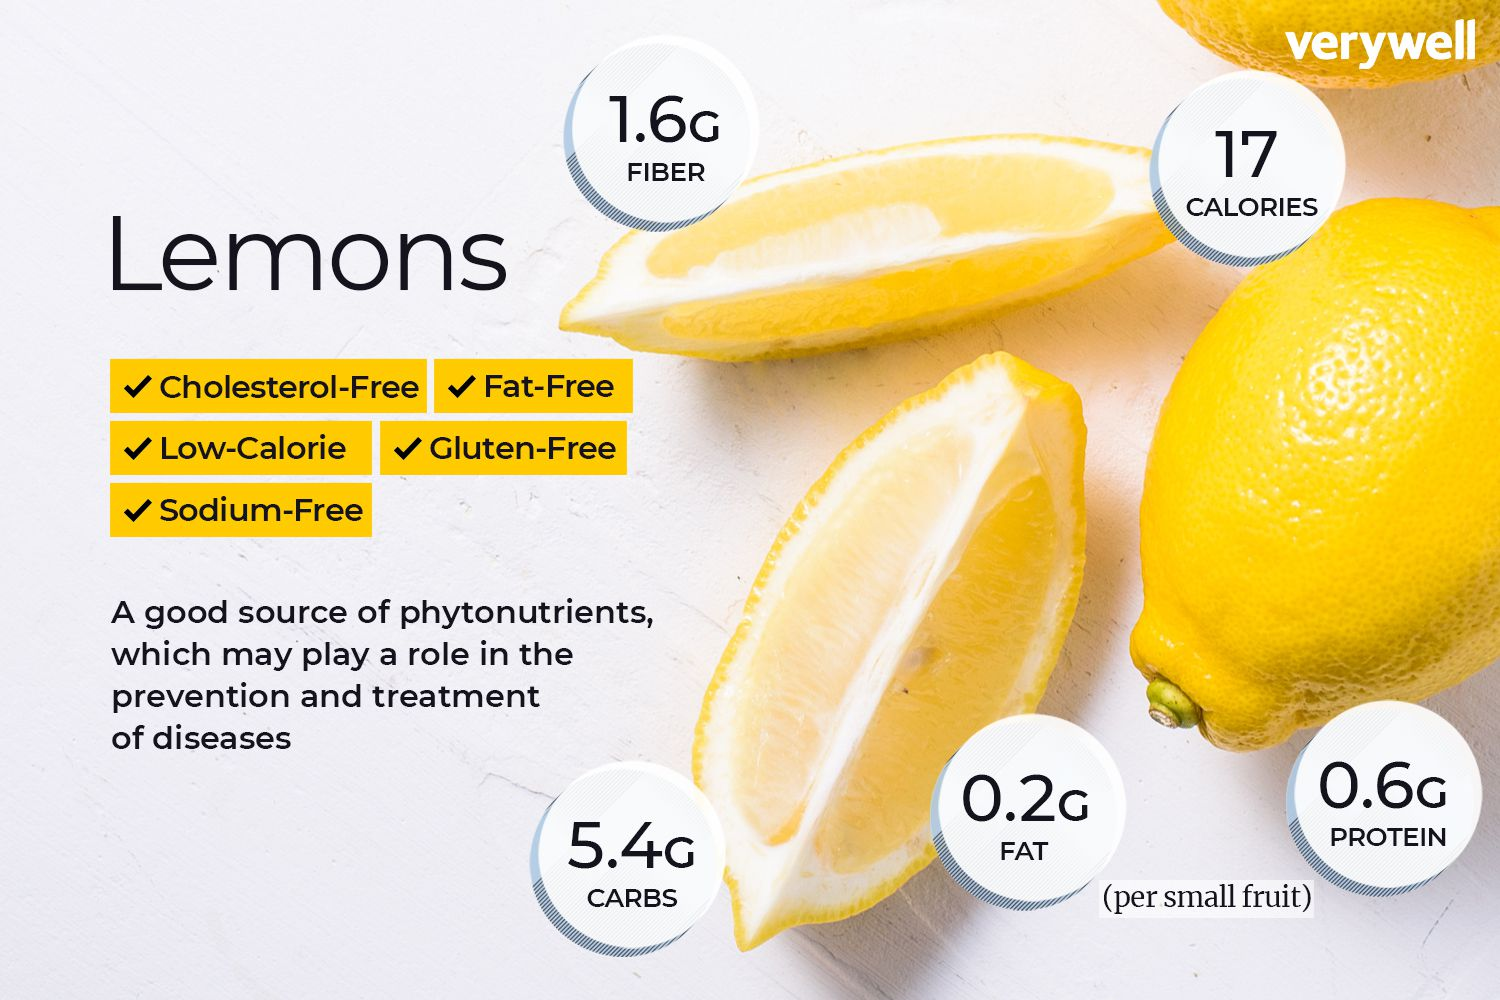 How Much Does A Lemon Weigh